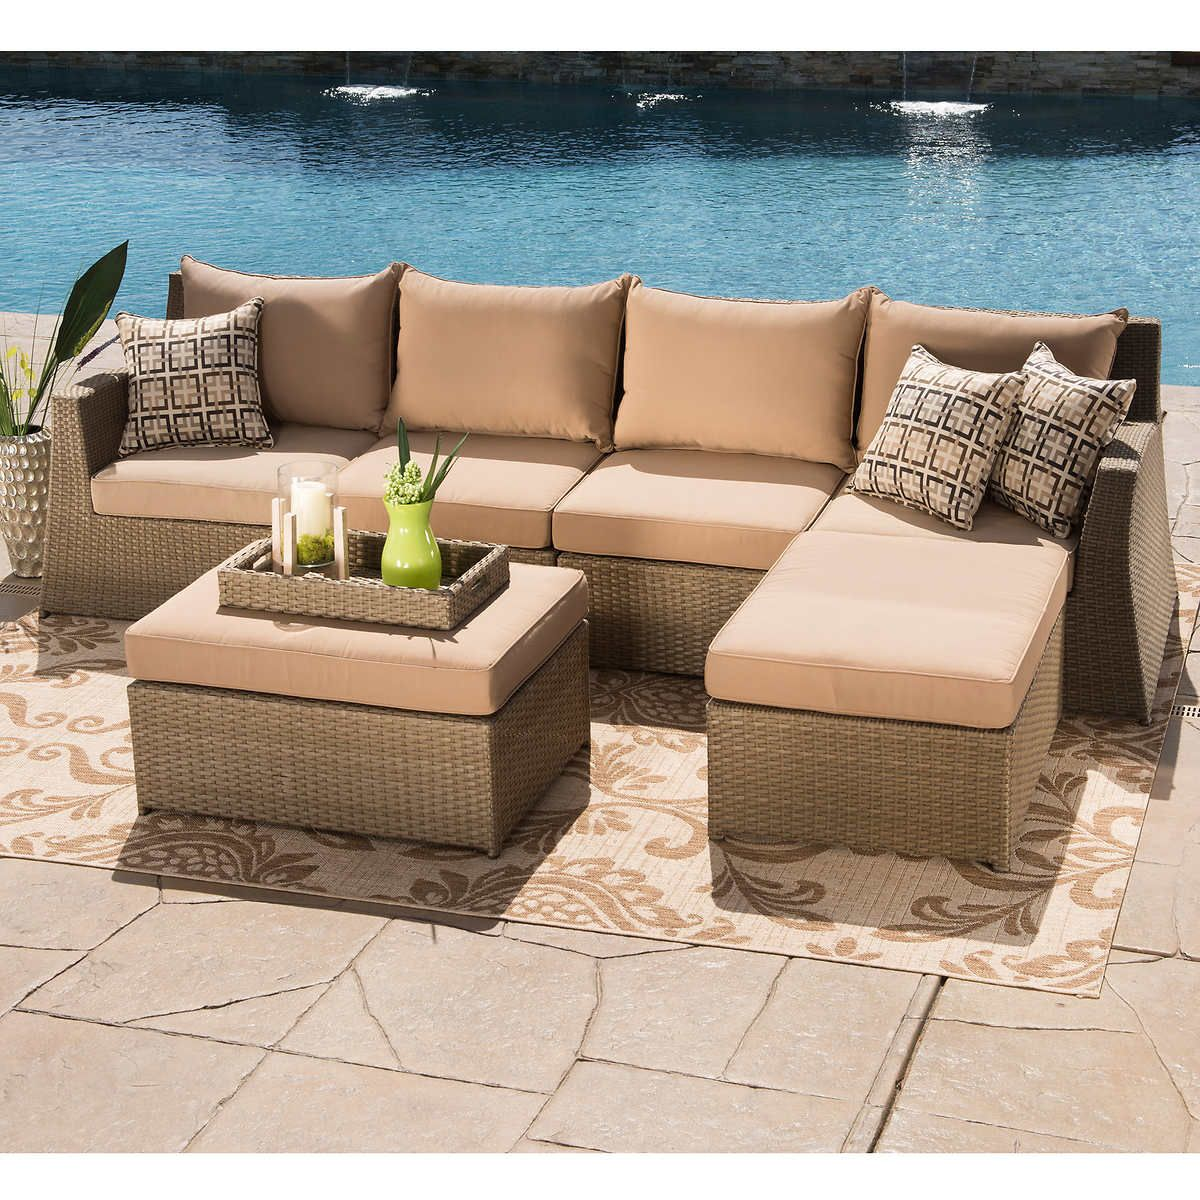 Hampton 6 Piece Seating Sectional By Sirio Buy Outdoor Furniture Patio Seating Sets Deep Seating